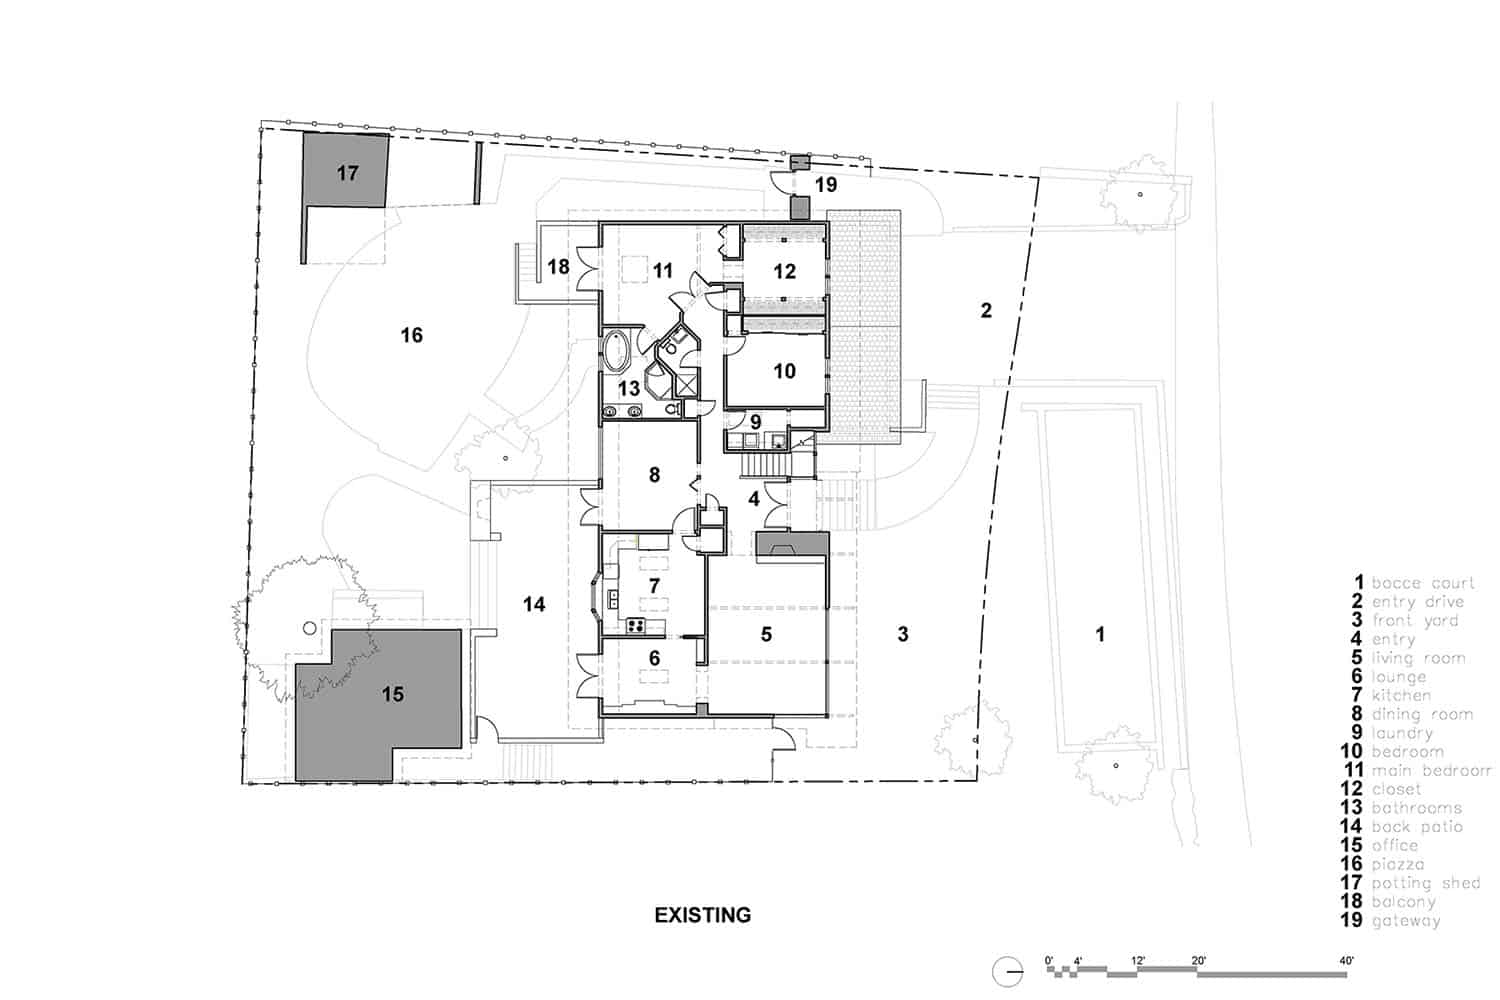 ranch-house-midcentury-floor-plan-before-remodel